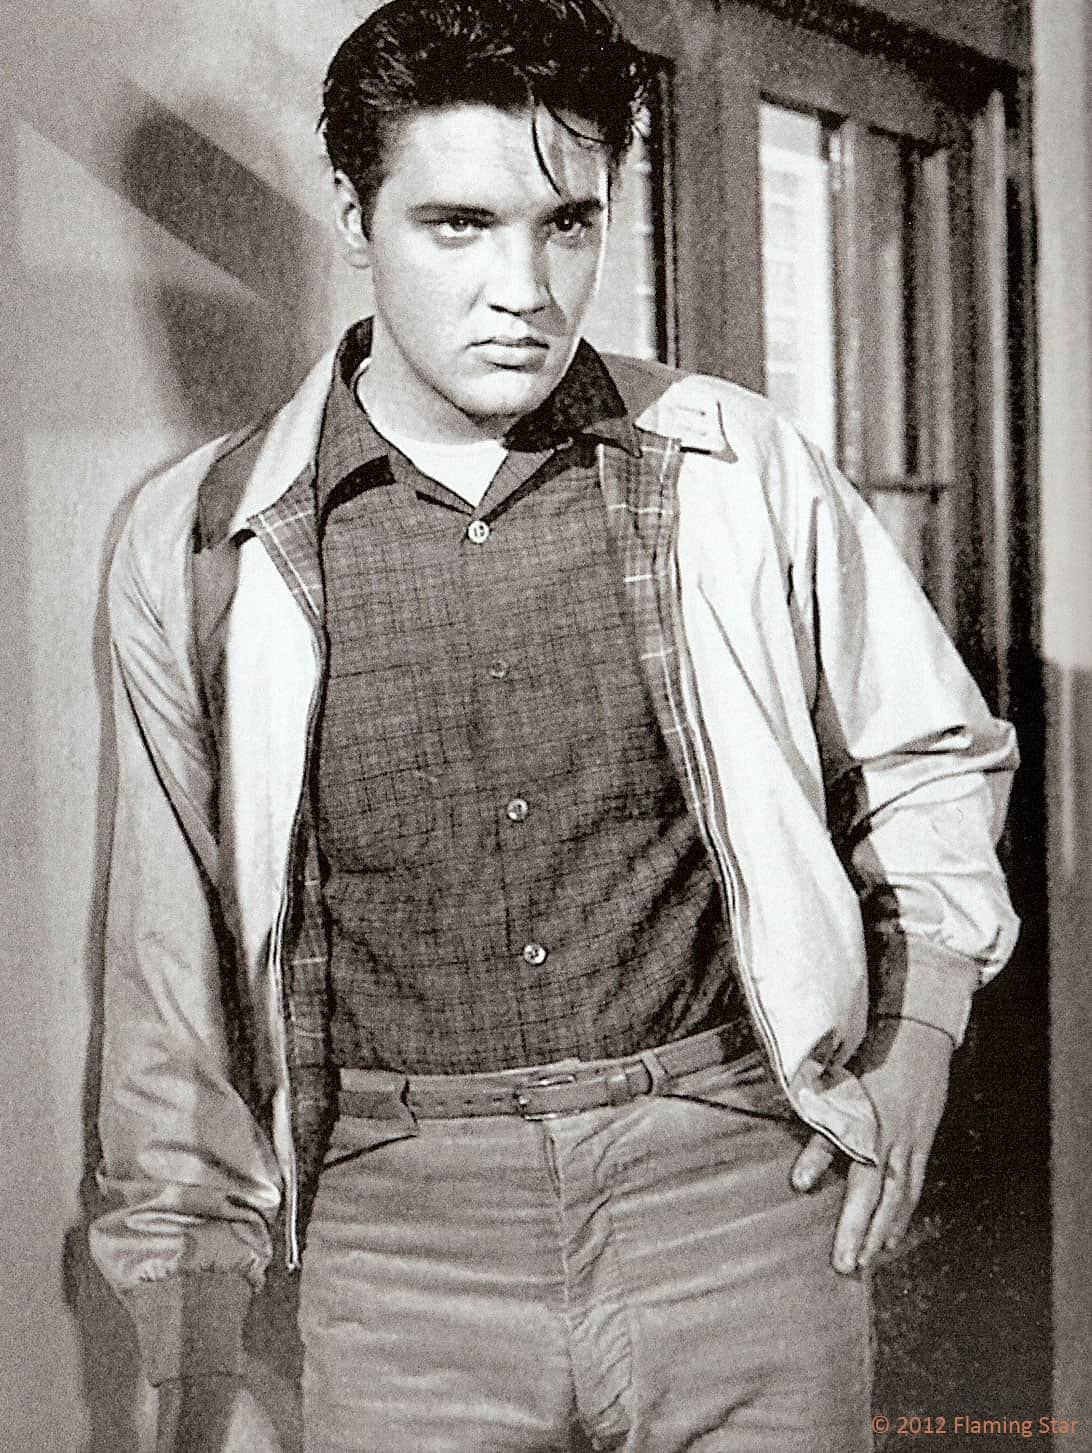 elvis presley wearing harrington jacket